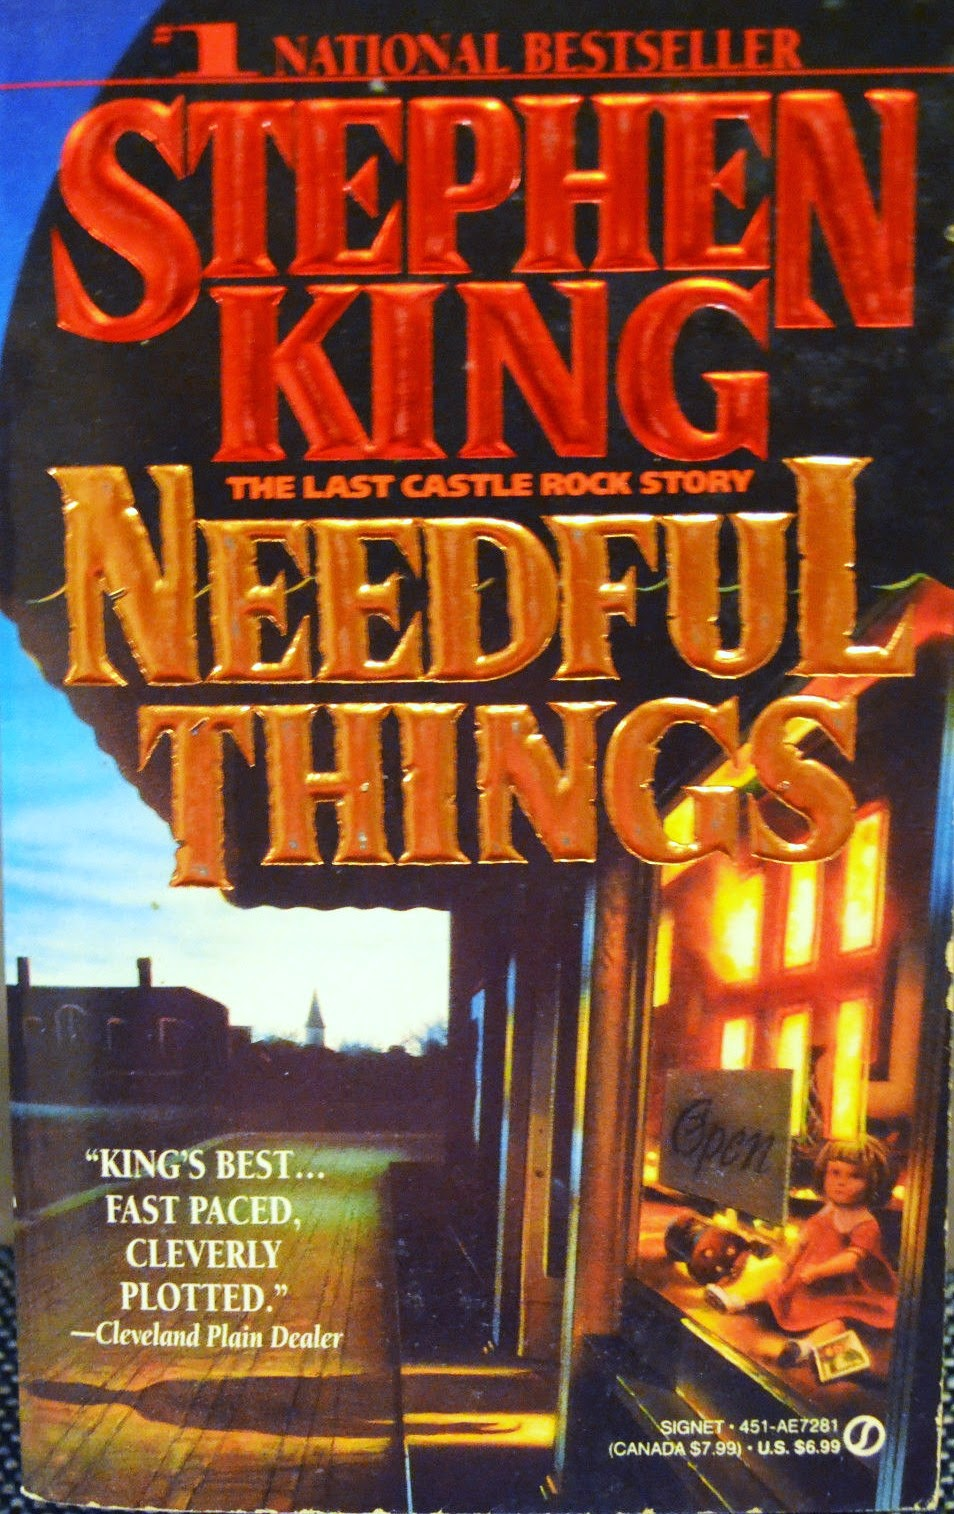 the early life and education of stephen edwin king Stephen edwin king was born in portland, maine, on september 21, 1947 he is the second son of donald edwin king and ruth pillsbury king his elder brother was adopted as an infant two years before stephen was born.